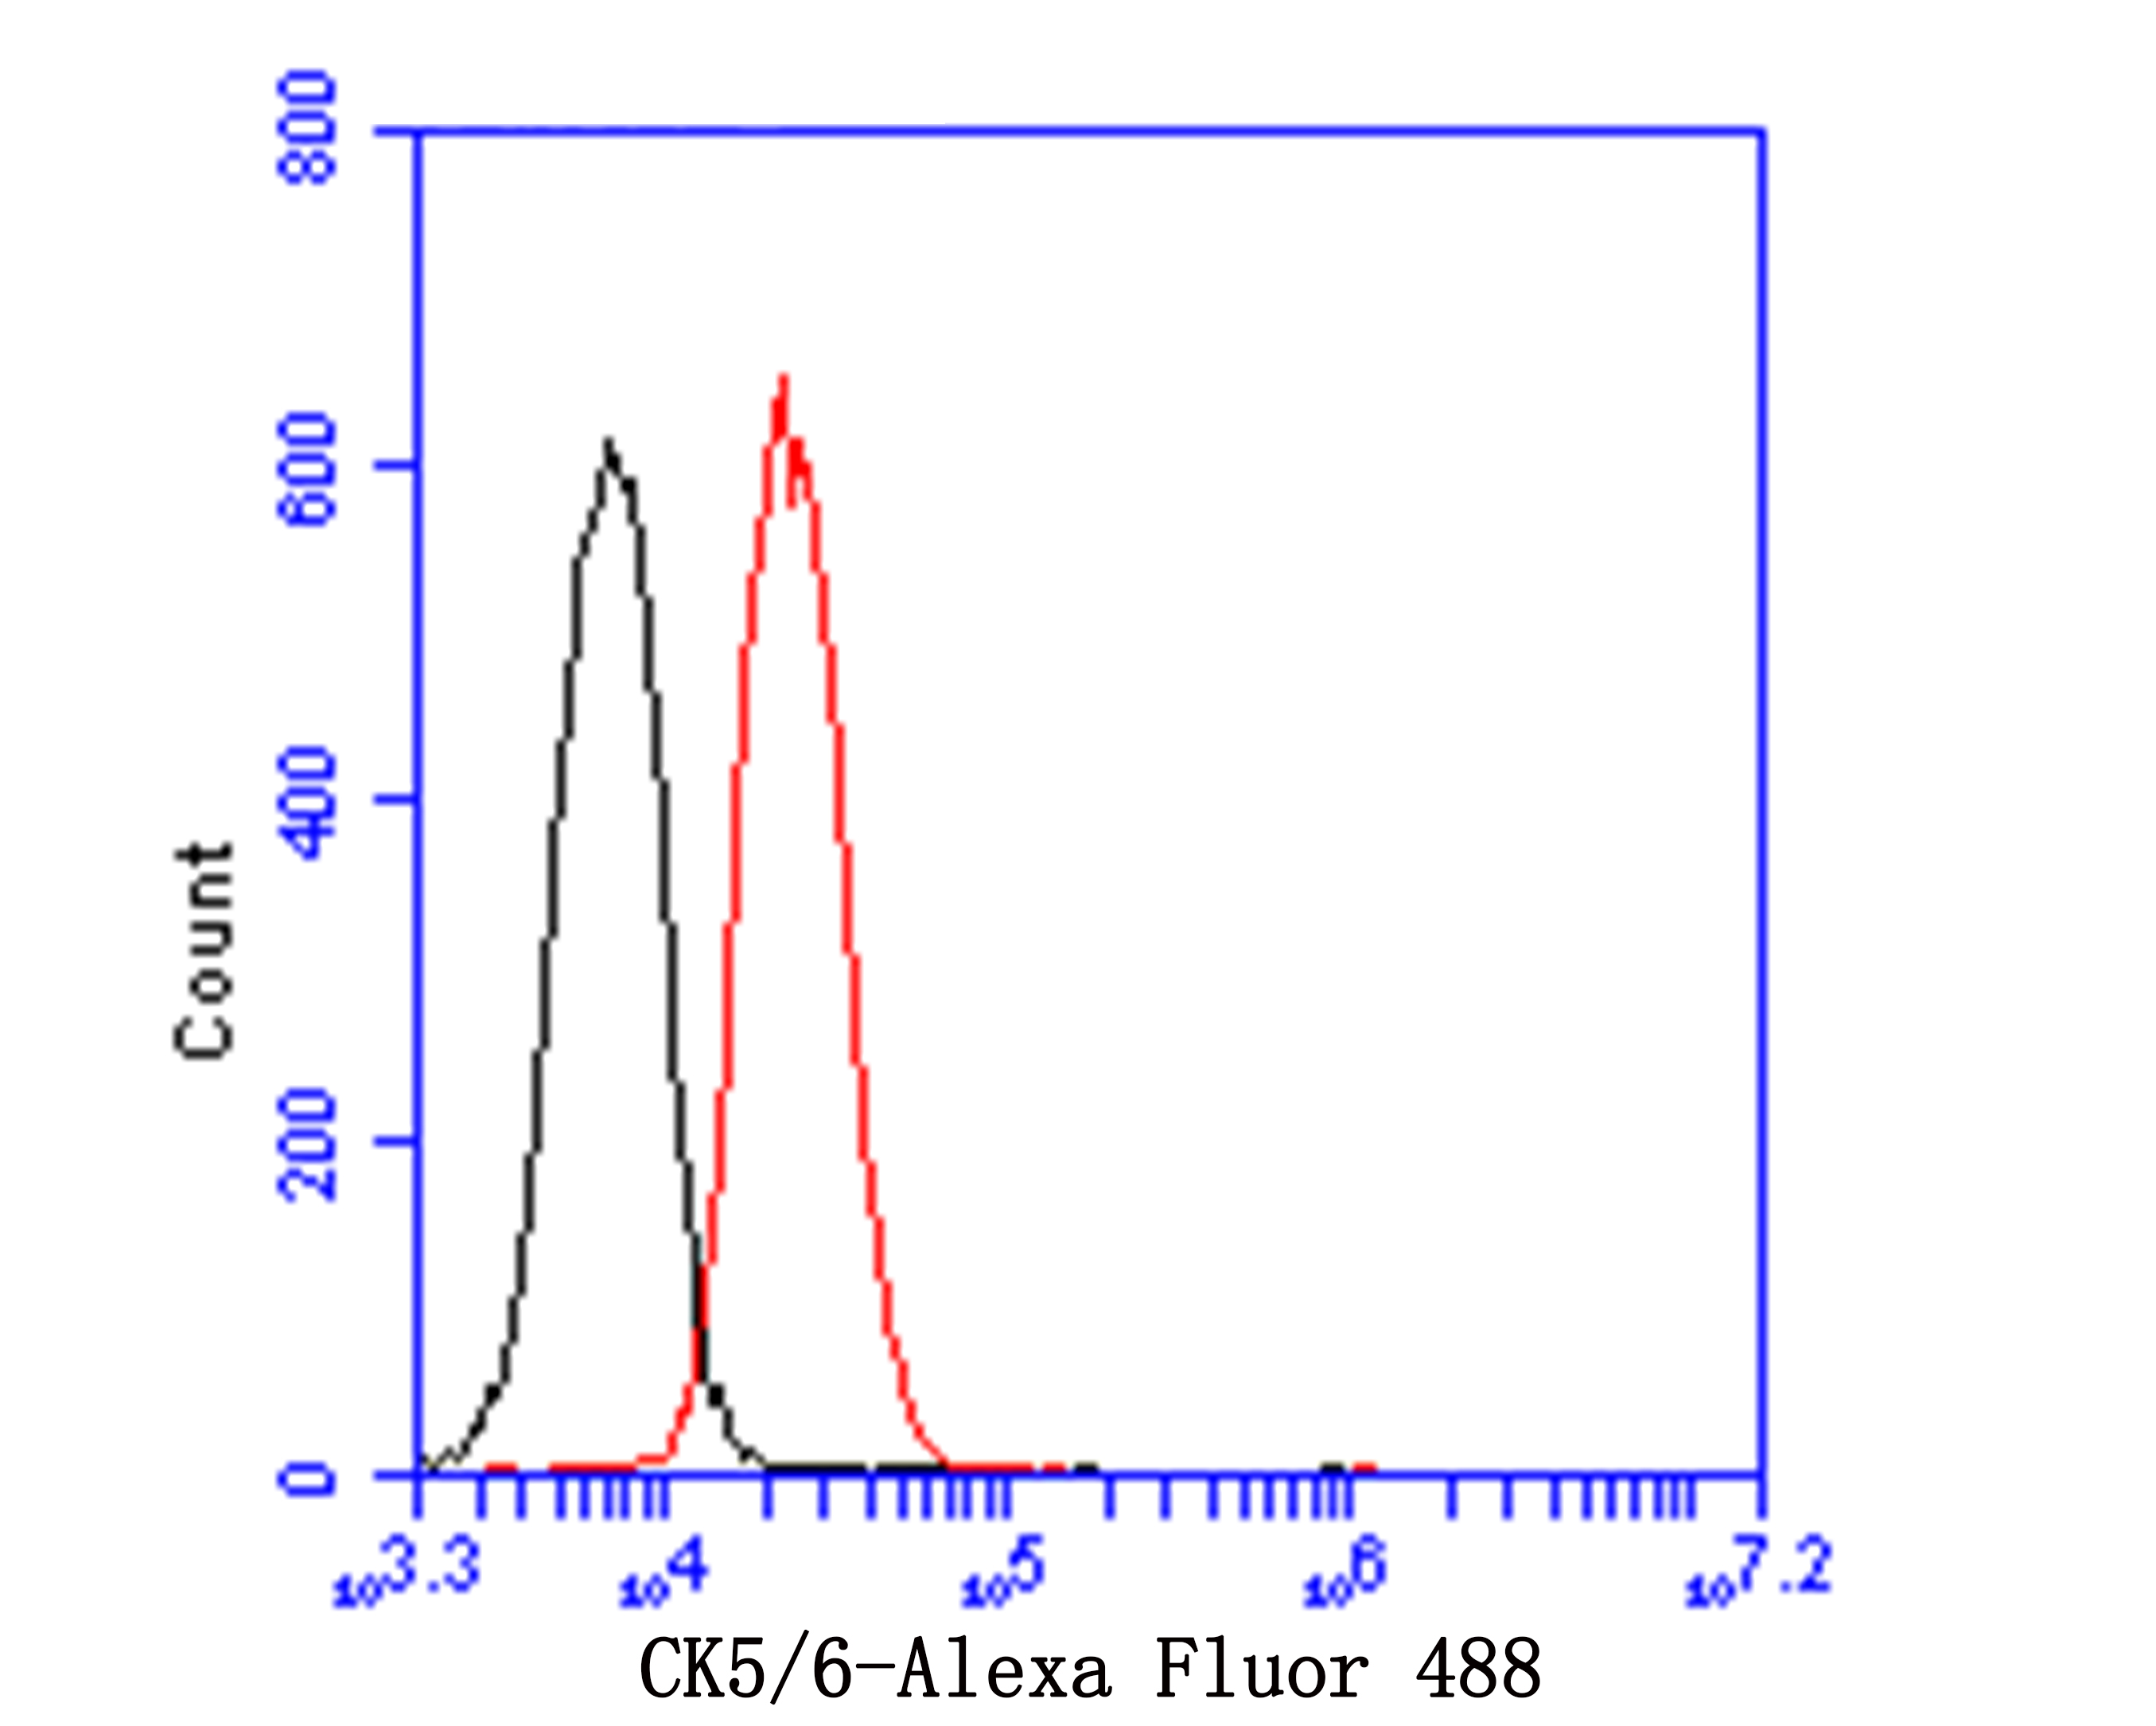 Flow cytometric analysis of Cytokeratin 5+6 was done on A431 cells. The cells were fixed, permeabilized and stained with the primary antibody (EM1901-08, 1/100) (red). After incubation of the primary antibody at room temperature for an hour, the cells were stained with a Alexa Fluor 488-conjugated goat anti-Mouse IgG Secondary antibody at 1/500 dilution for 30 minutes.Unlabelled sample was used as a control (cells without incubation with primary antibody; black).